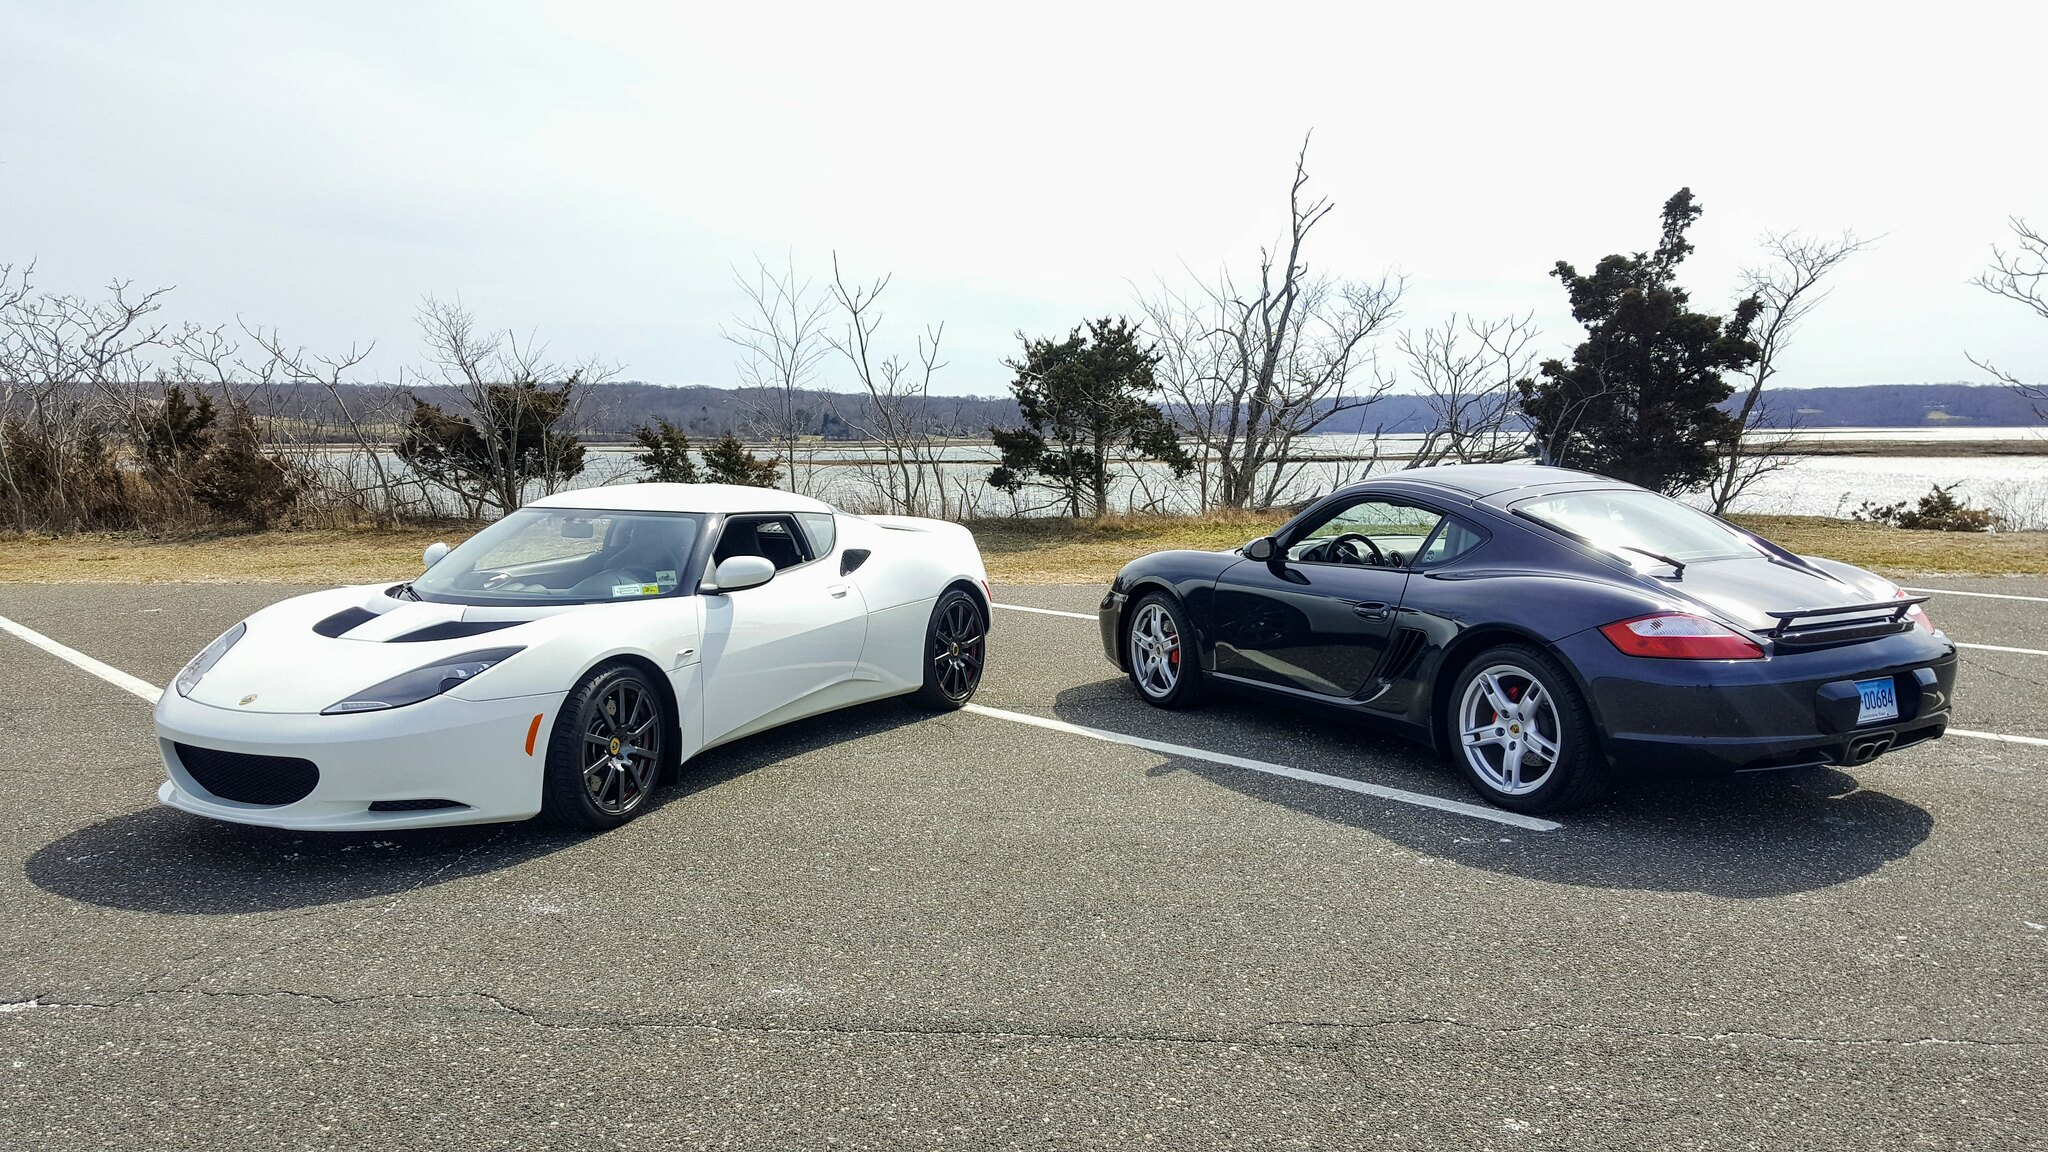 What Did You Do To Your Evora Today?